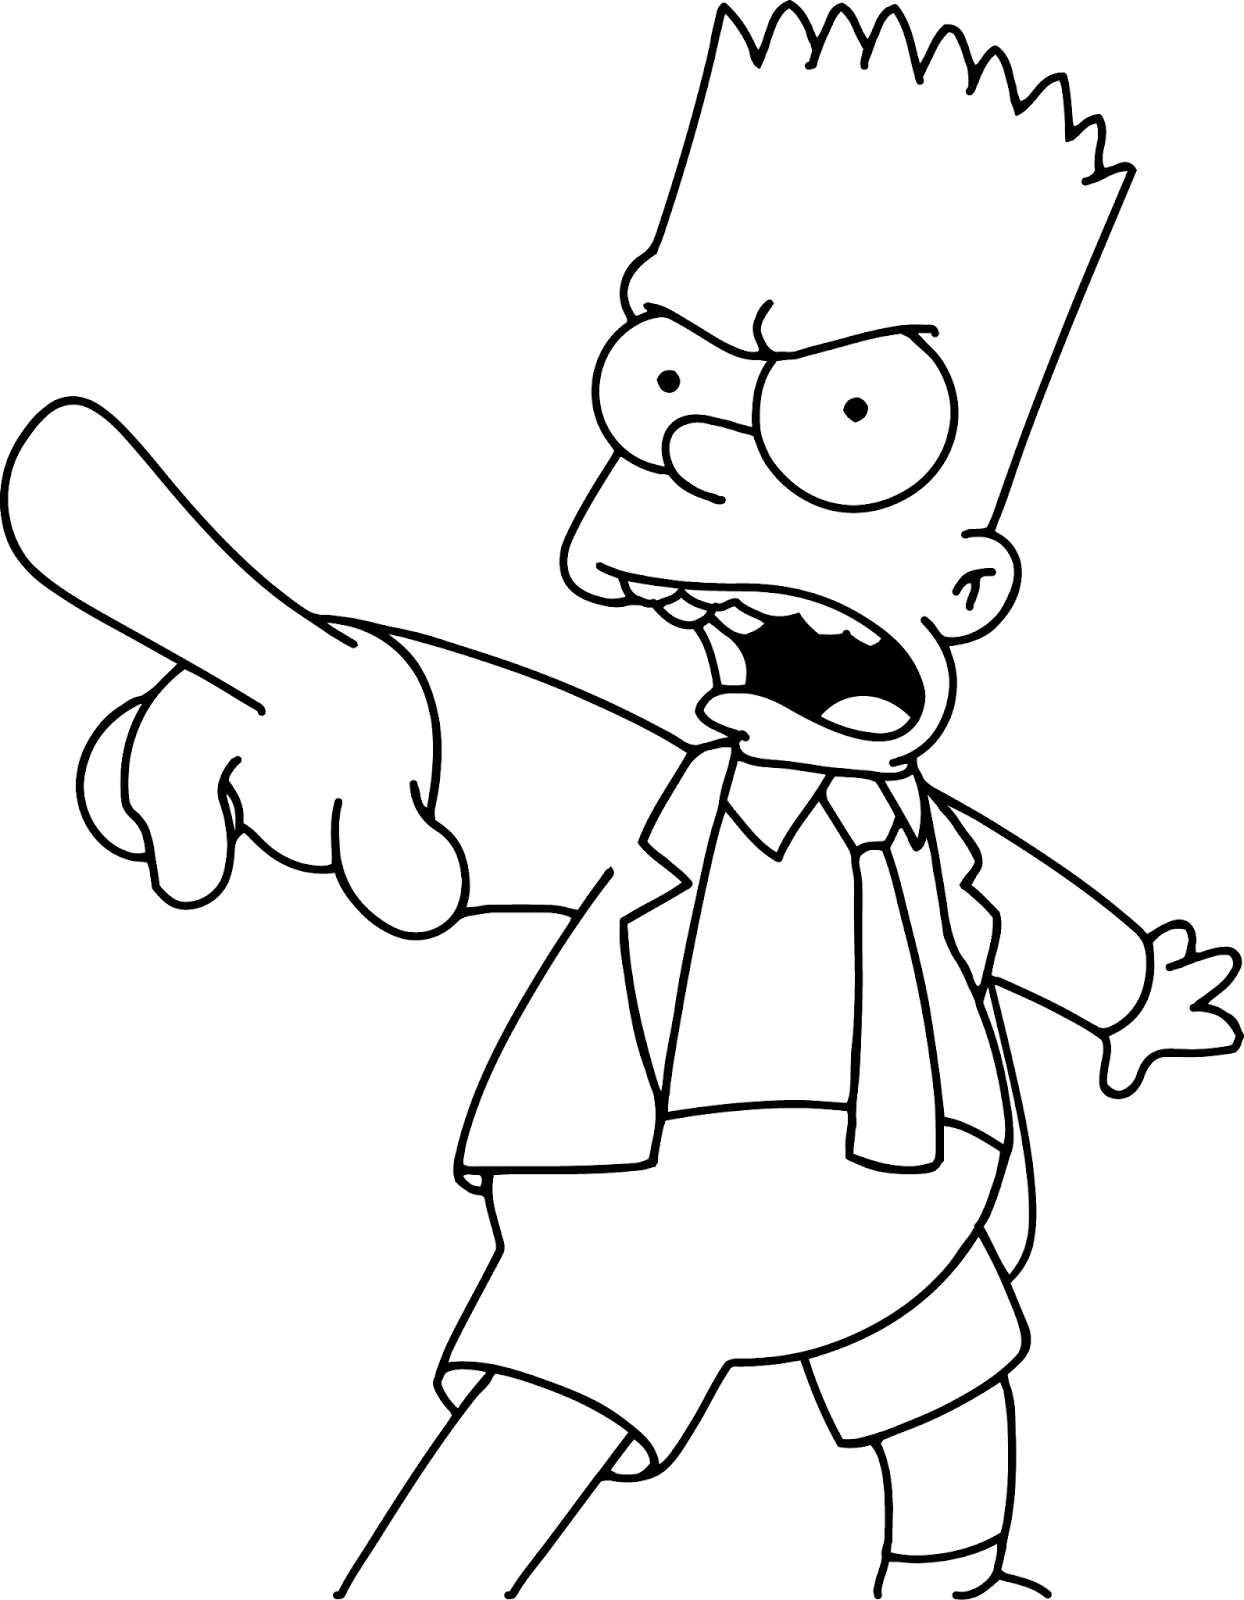 bart simpson coloring bart simpson the simpsons version coloring page coloring bart simpson